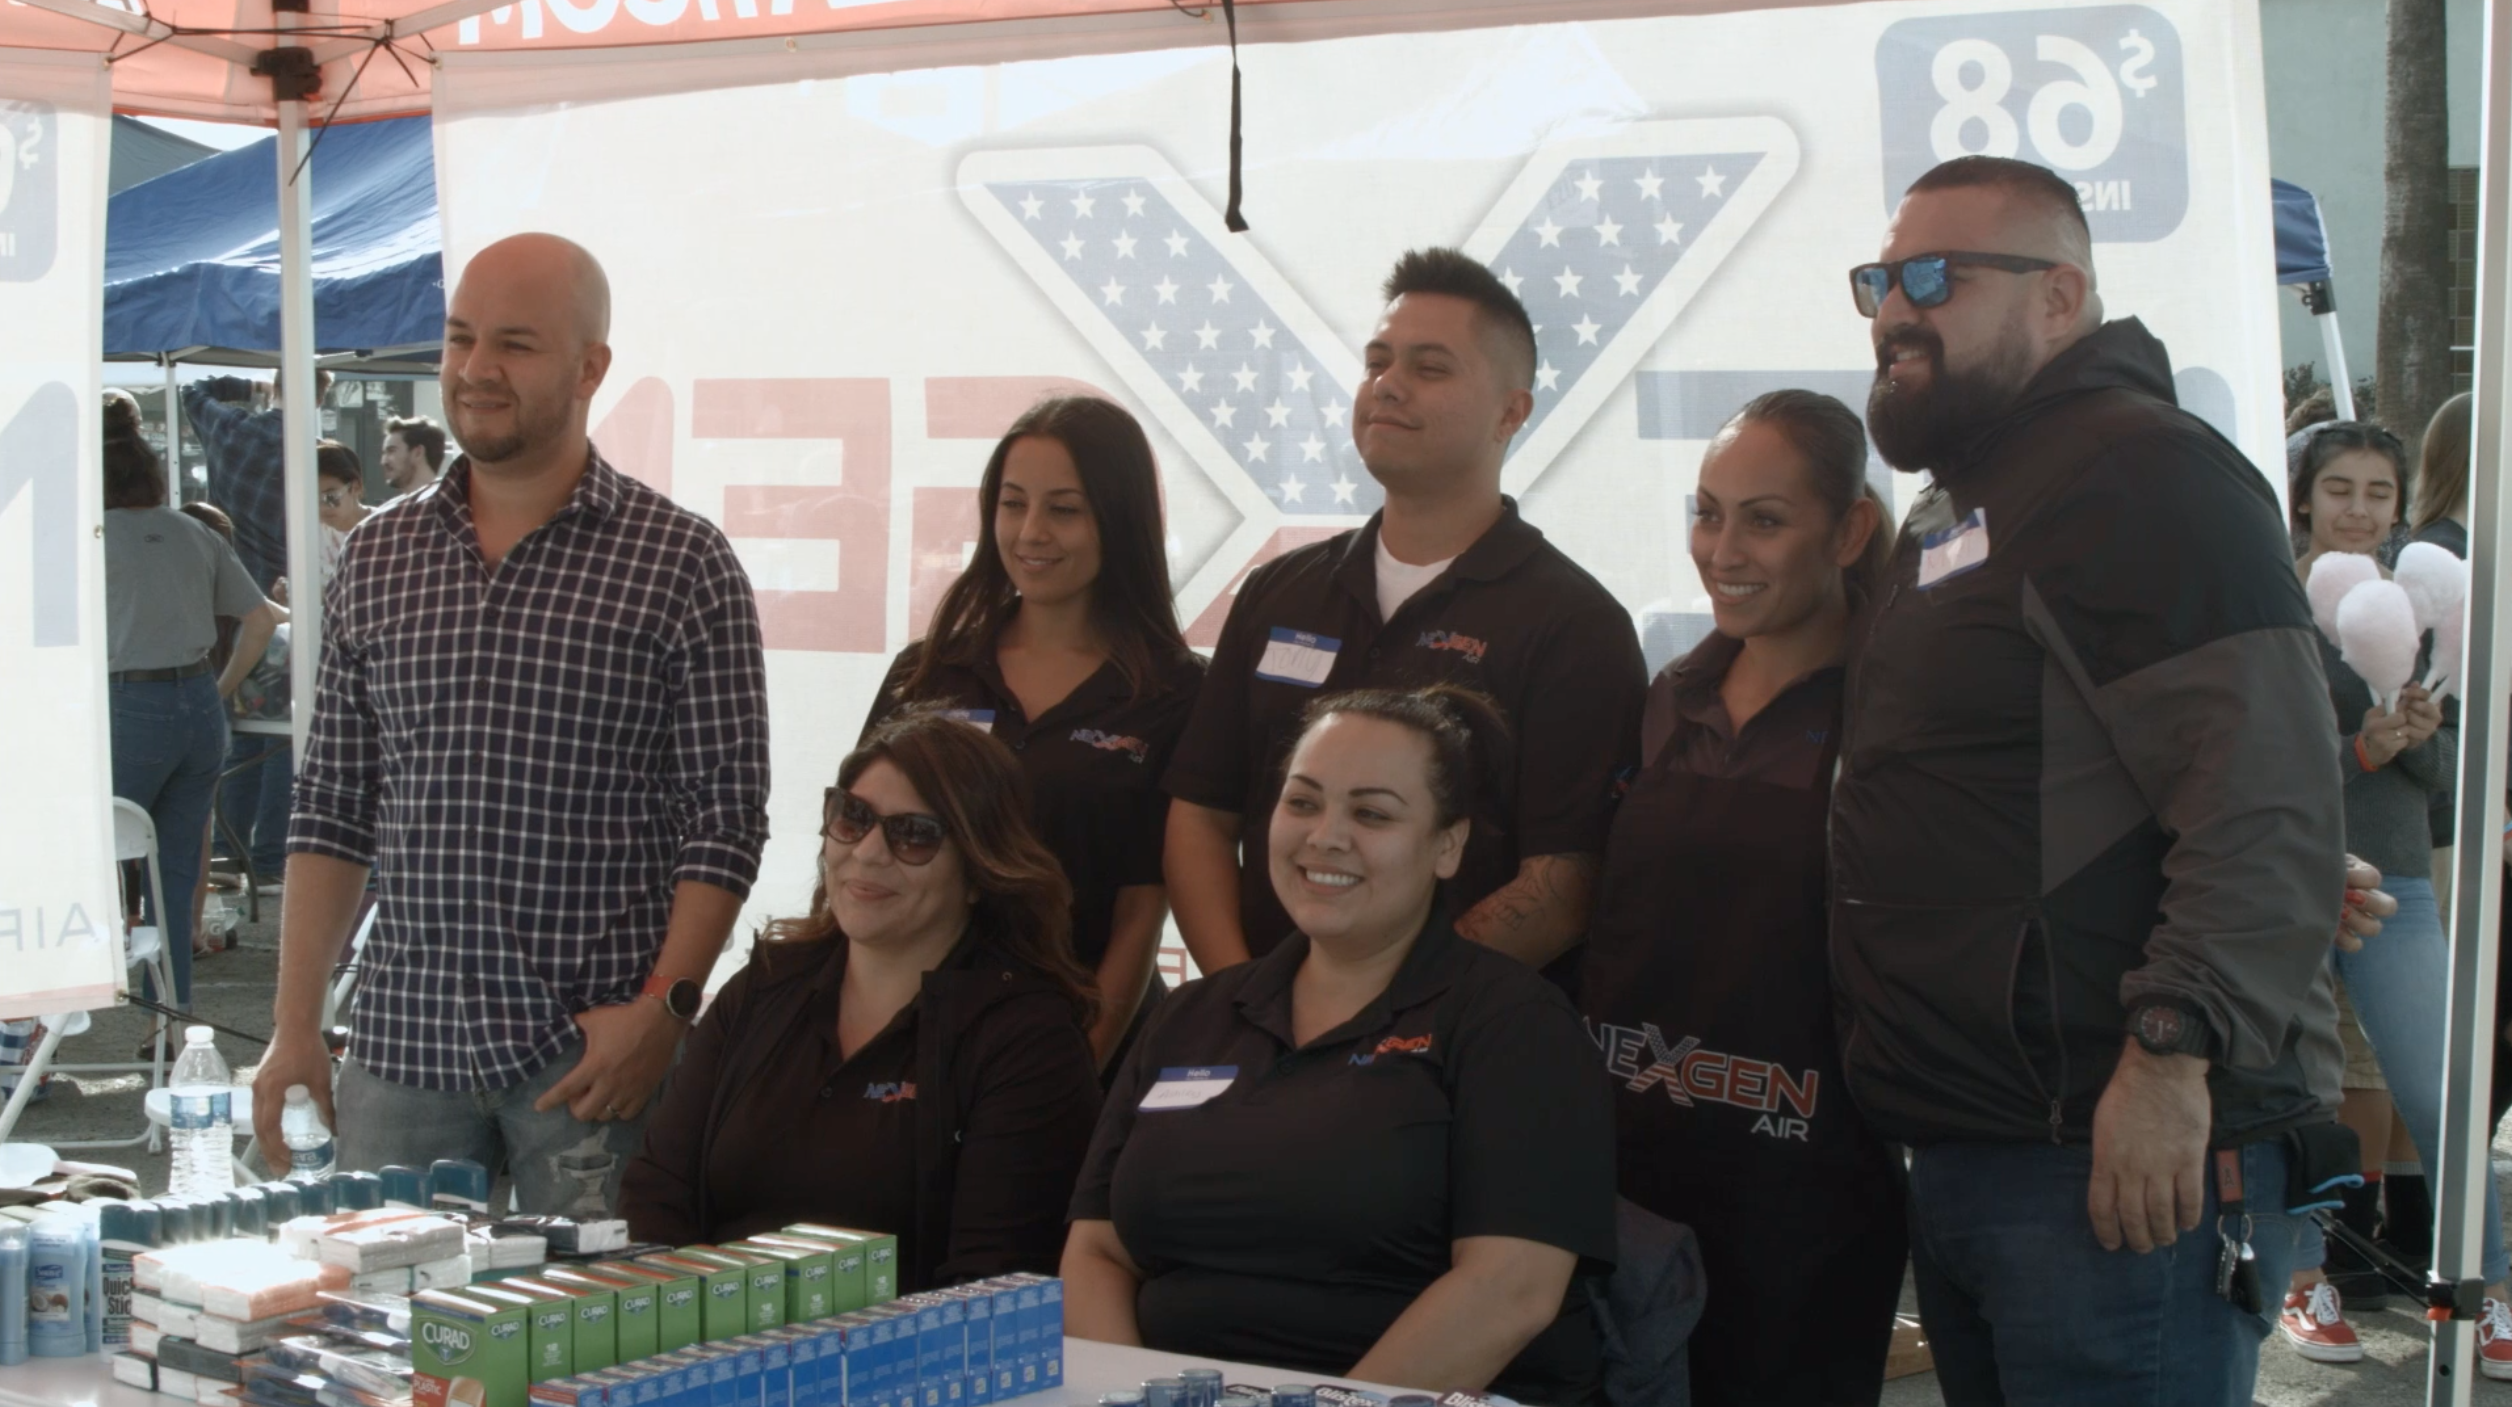 Nexgen Joins Hope of the Valley to Feed the Homeless and Support Our Local Community